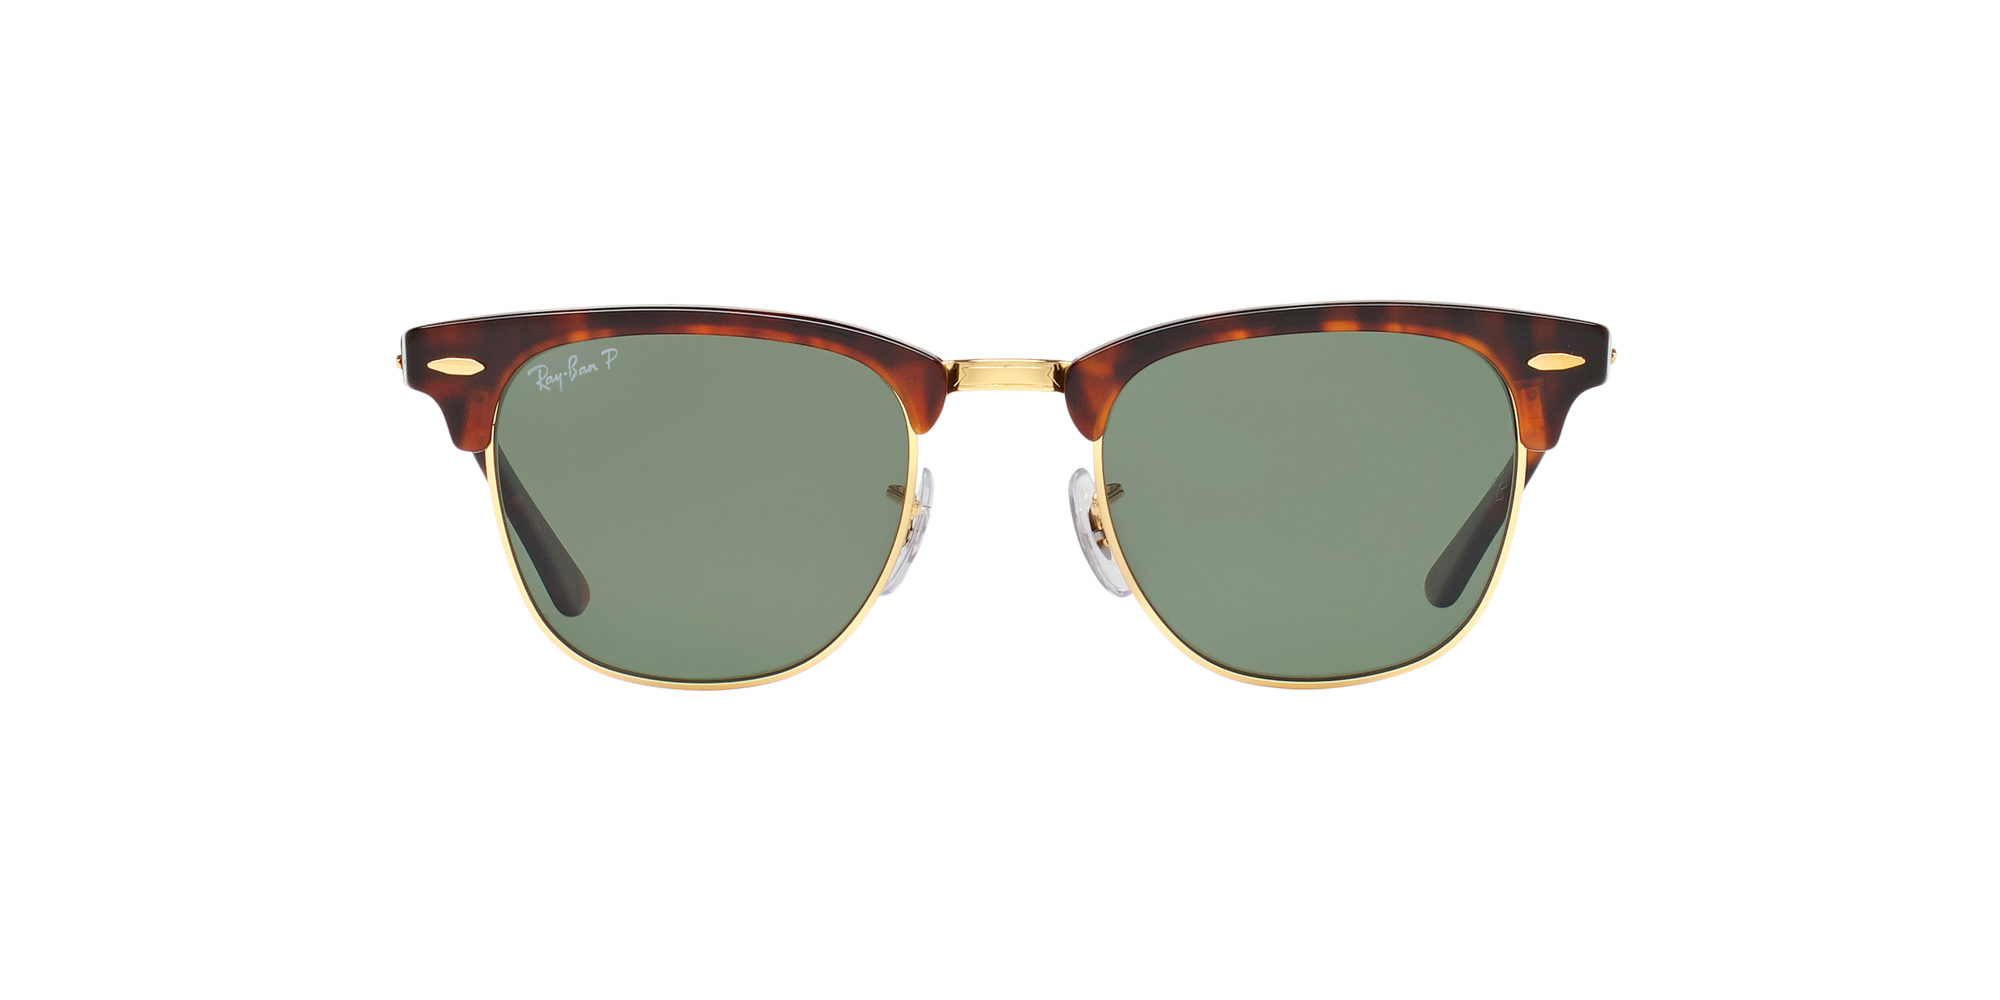 c2f09ce655 coupon code for ray ban black rb3016 green lenses 49mm 51a9d 349a1  usa ray  ban rb3016 clubmaster sunglasses 49mm polarized walmart f8261 7f656